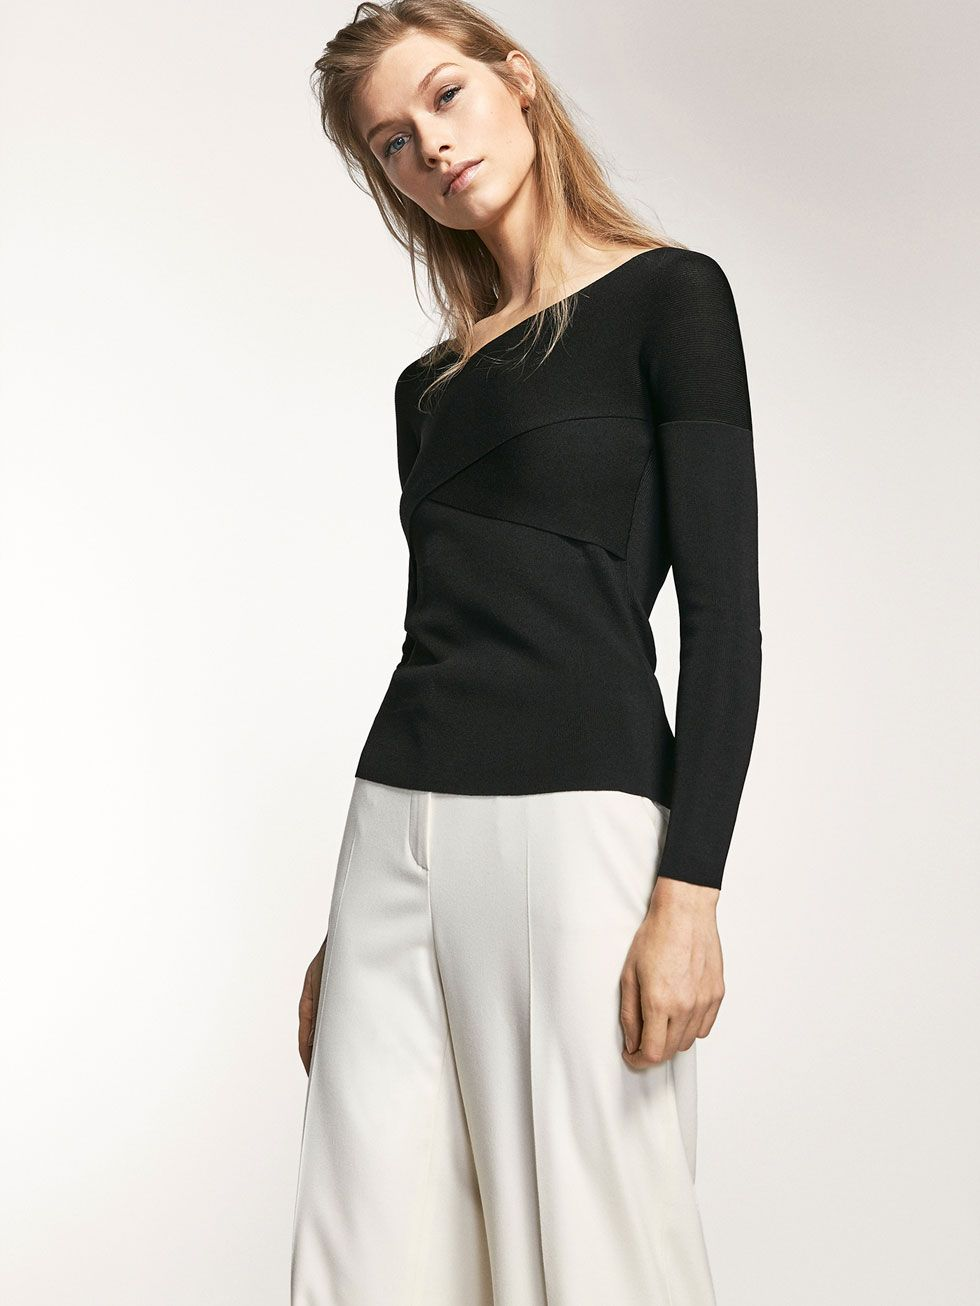 Autumn Spring summer 2017 Women´s CROSSOVER KNIT SWEATER at Massimo Dutti for 94.5. Effortless elegance!